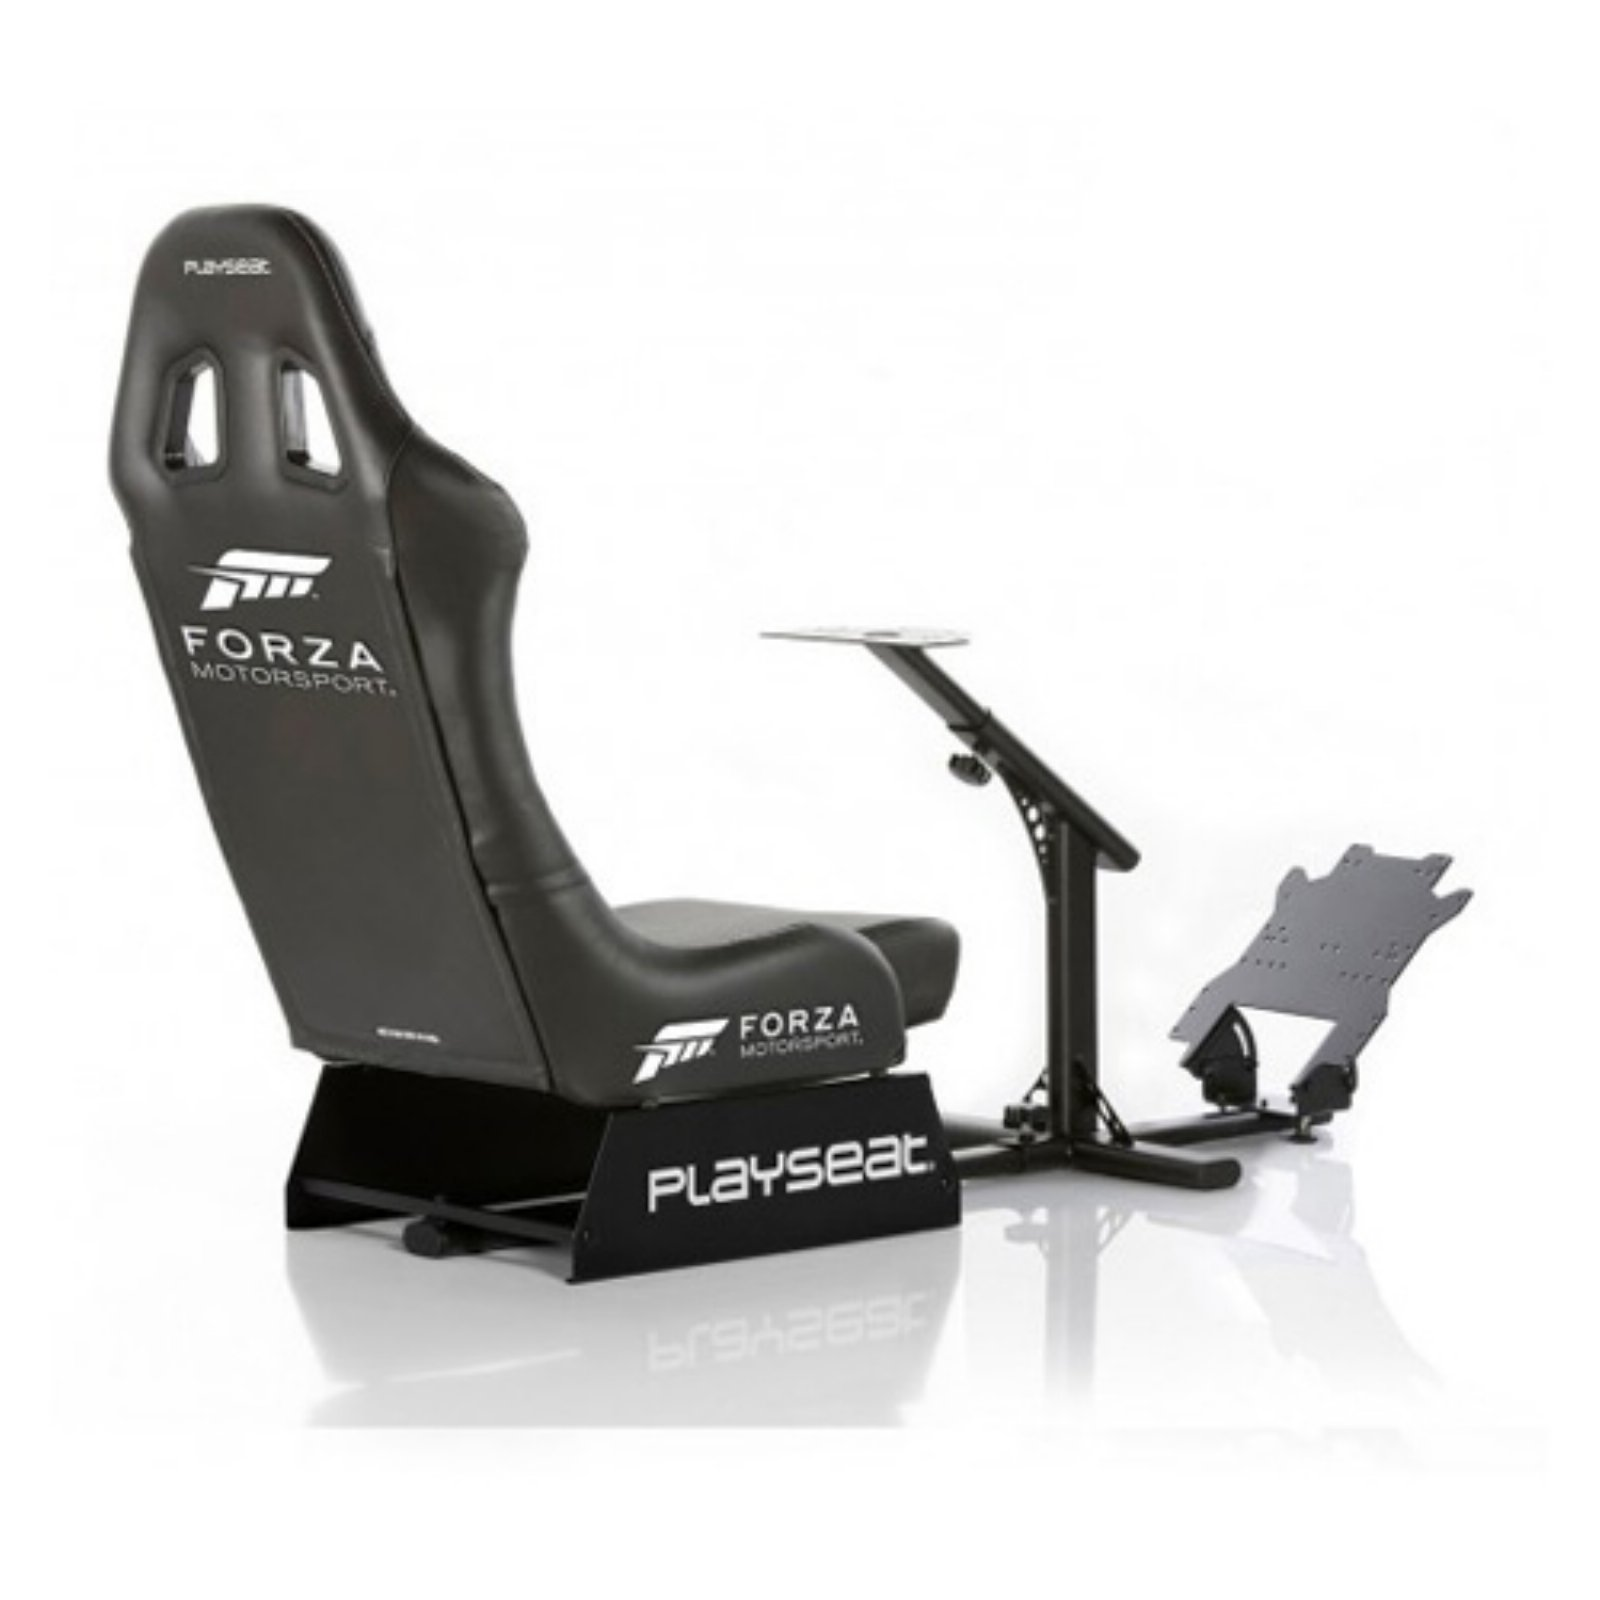 Exceptionnel Playseat Evolution Forza Motorsports Gaming Chair   Walmart.com